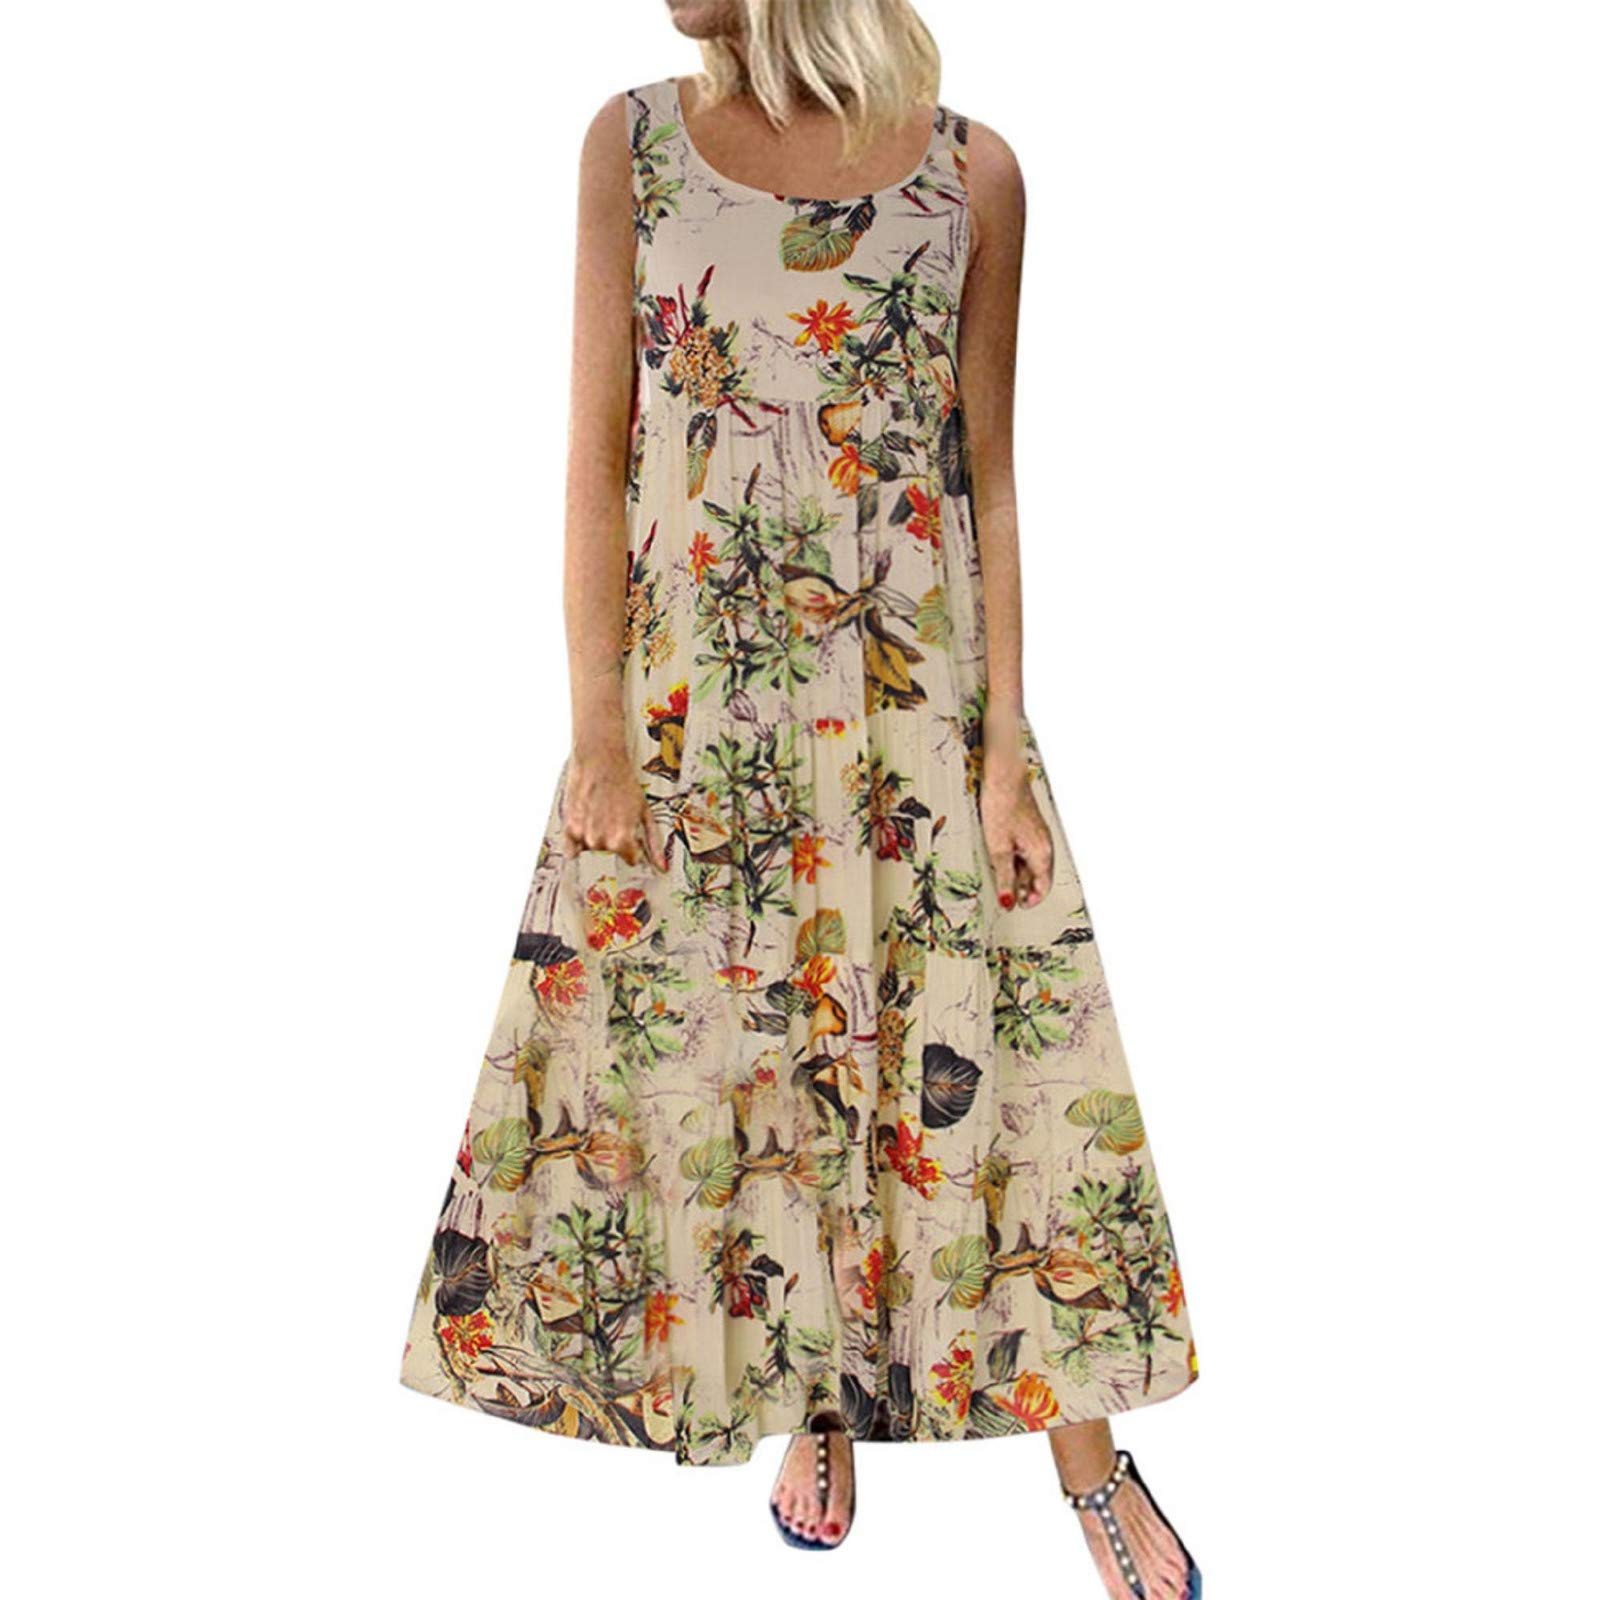 Women Vintage Casual Home Maxi Dress Cold Shoulder Floral Printed Dresses Sleeveless Casual Summer Pleated Long Dress Beige